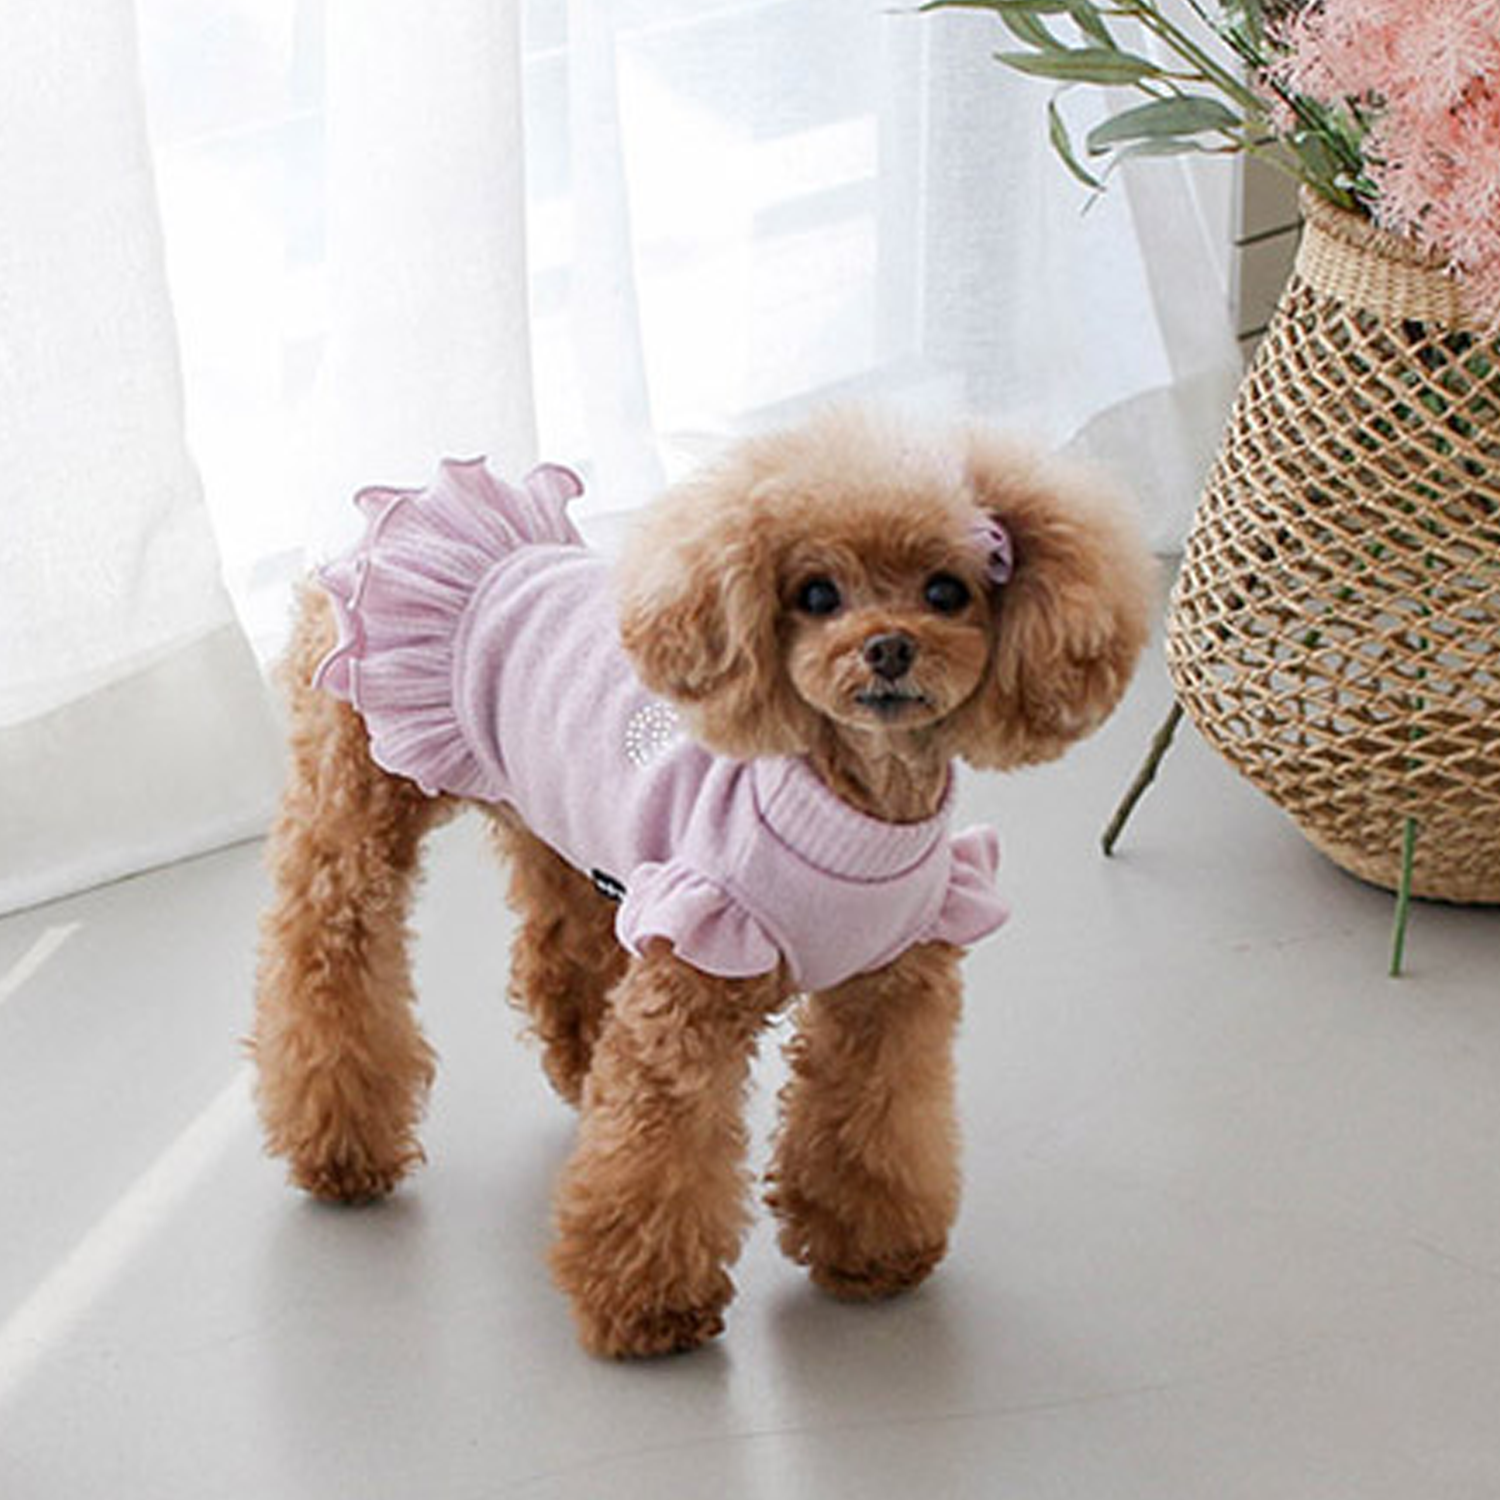 Crystal Love Dog Dress: Lavender